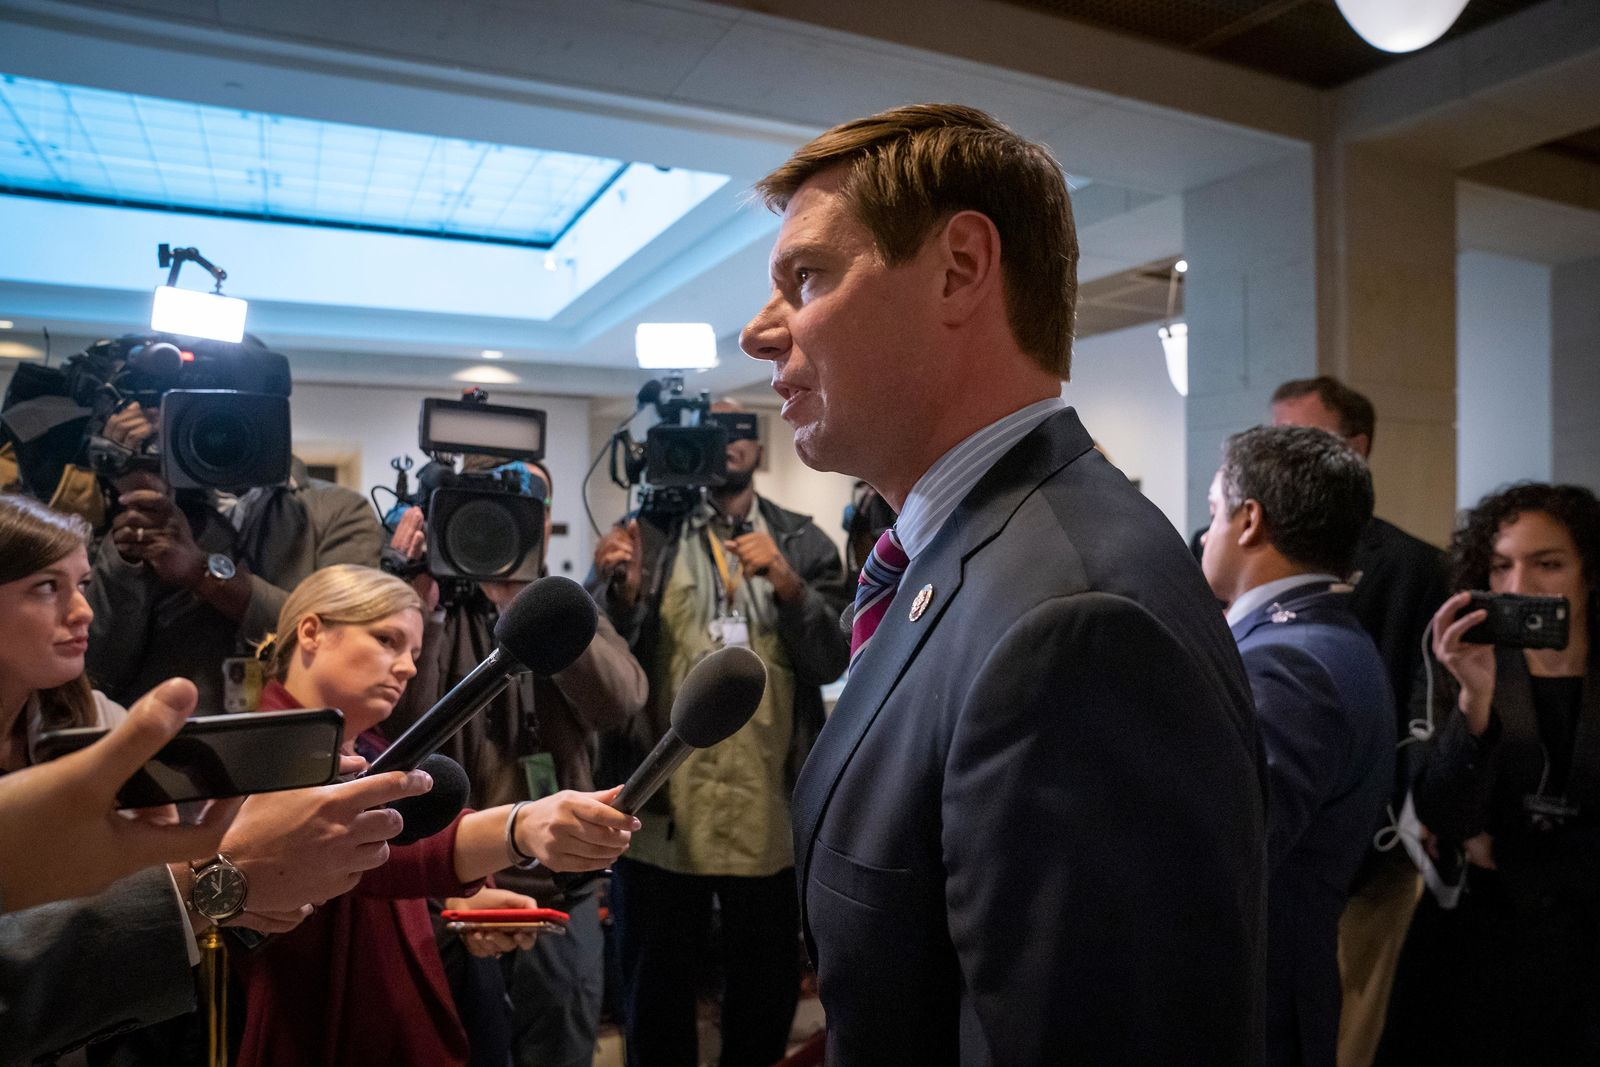 Rep. Eric Swalwell, D-Calif., a member of the House Intelligence Committee, answers questions from reporters about the day-long meeting behind closed-doors with top U.S. diplomat, William Taylor, who is testifying in the Democrats' impeachment investigation of President Donald Trump, in Washington, Tuesday, Oct. 22, 2019. (AP Photo/J. Scott Applewhite)